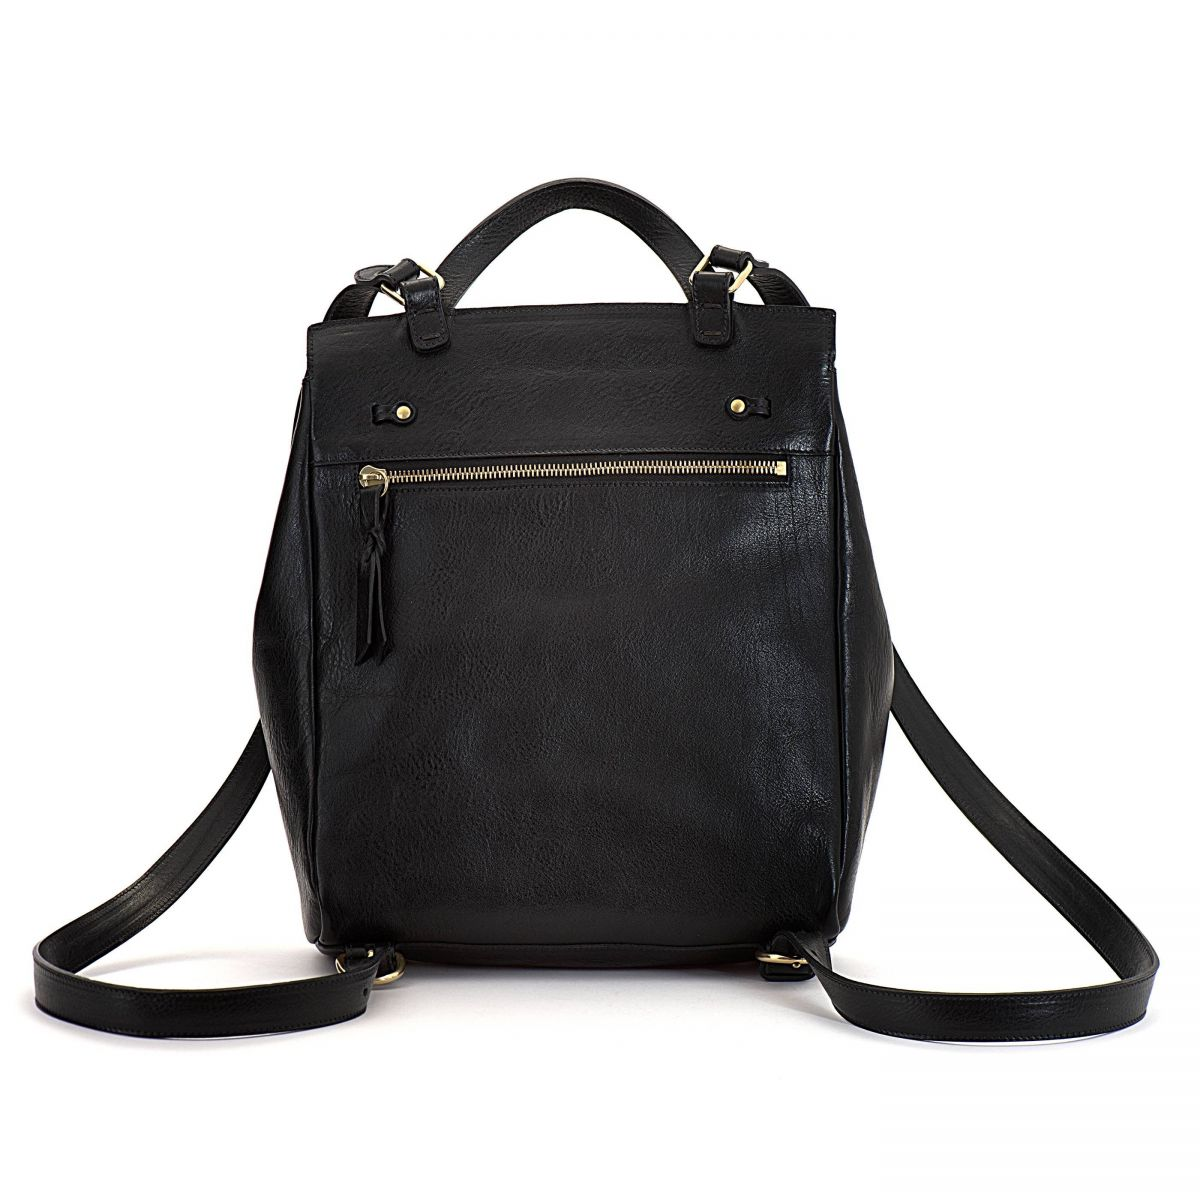 Women's Backpack Tornabuoni in Cowhide Double Leather BBA019 color Black | Details